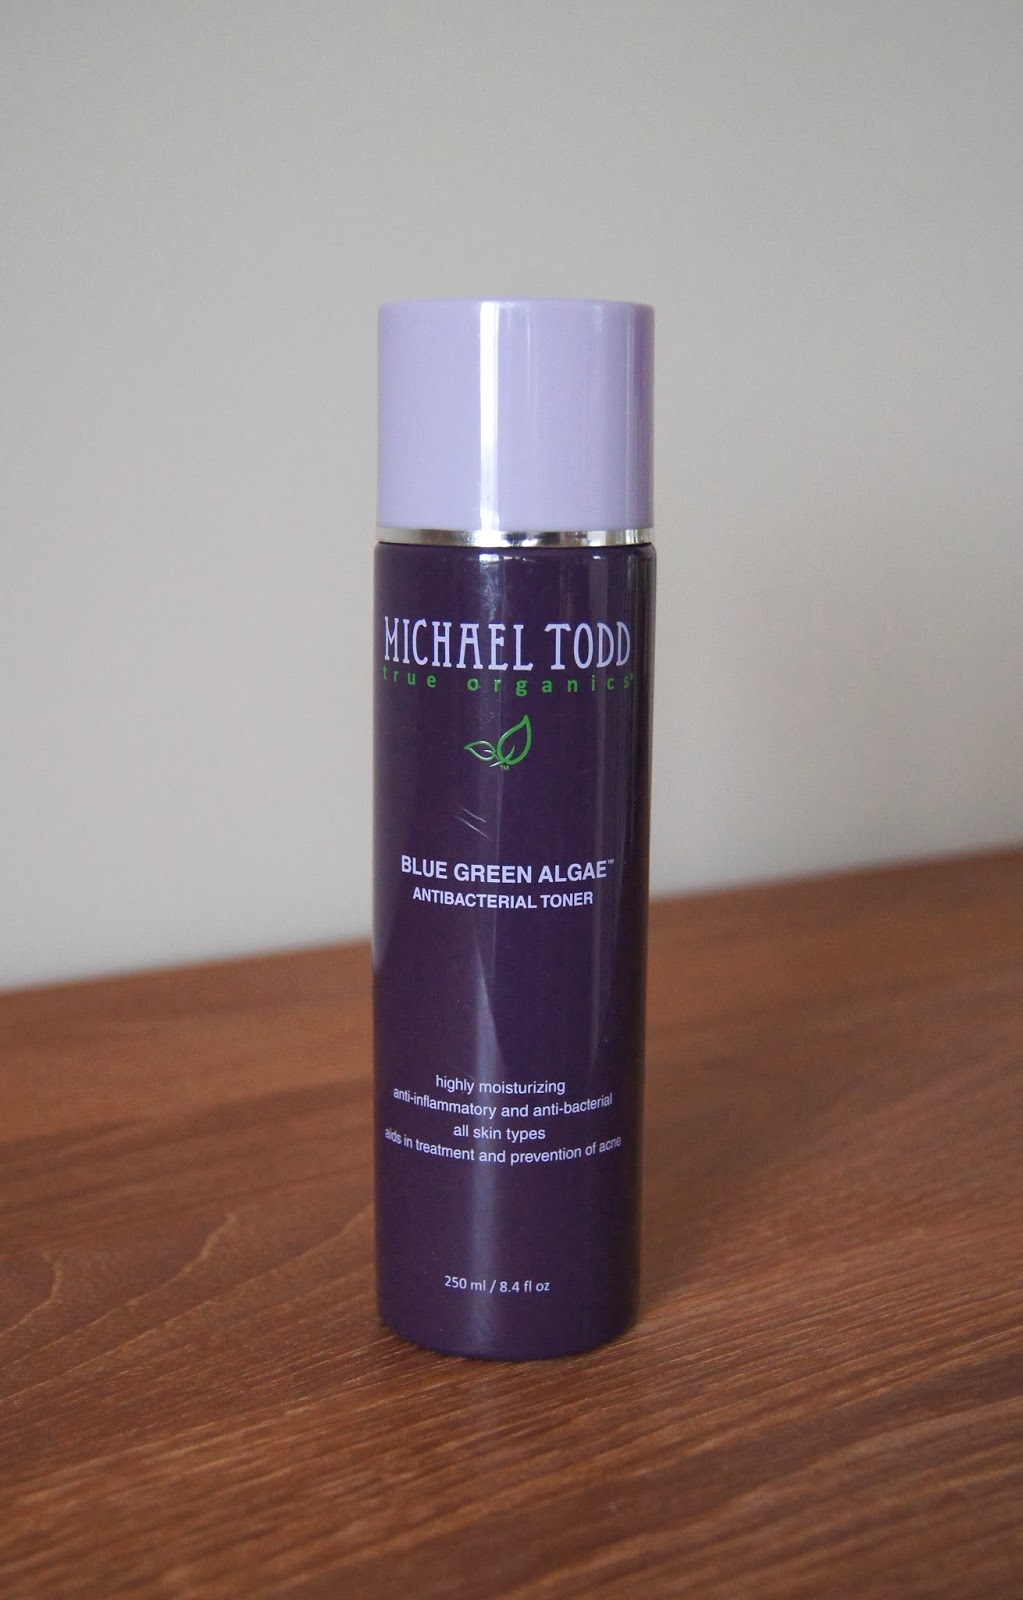 michael todd blue green algae antibacterial toner empty review